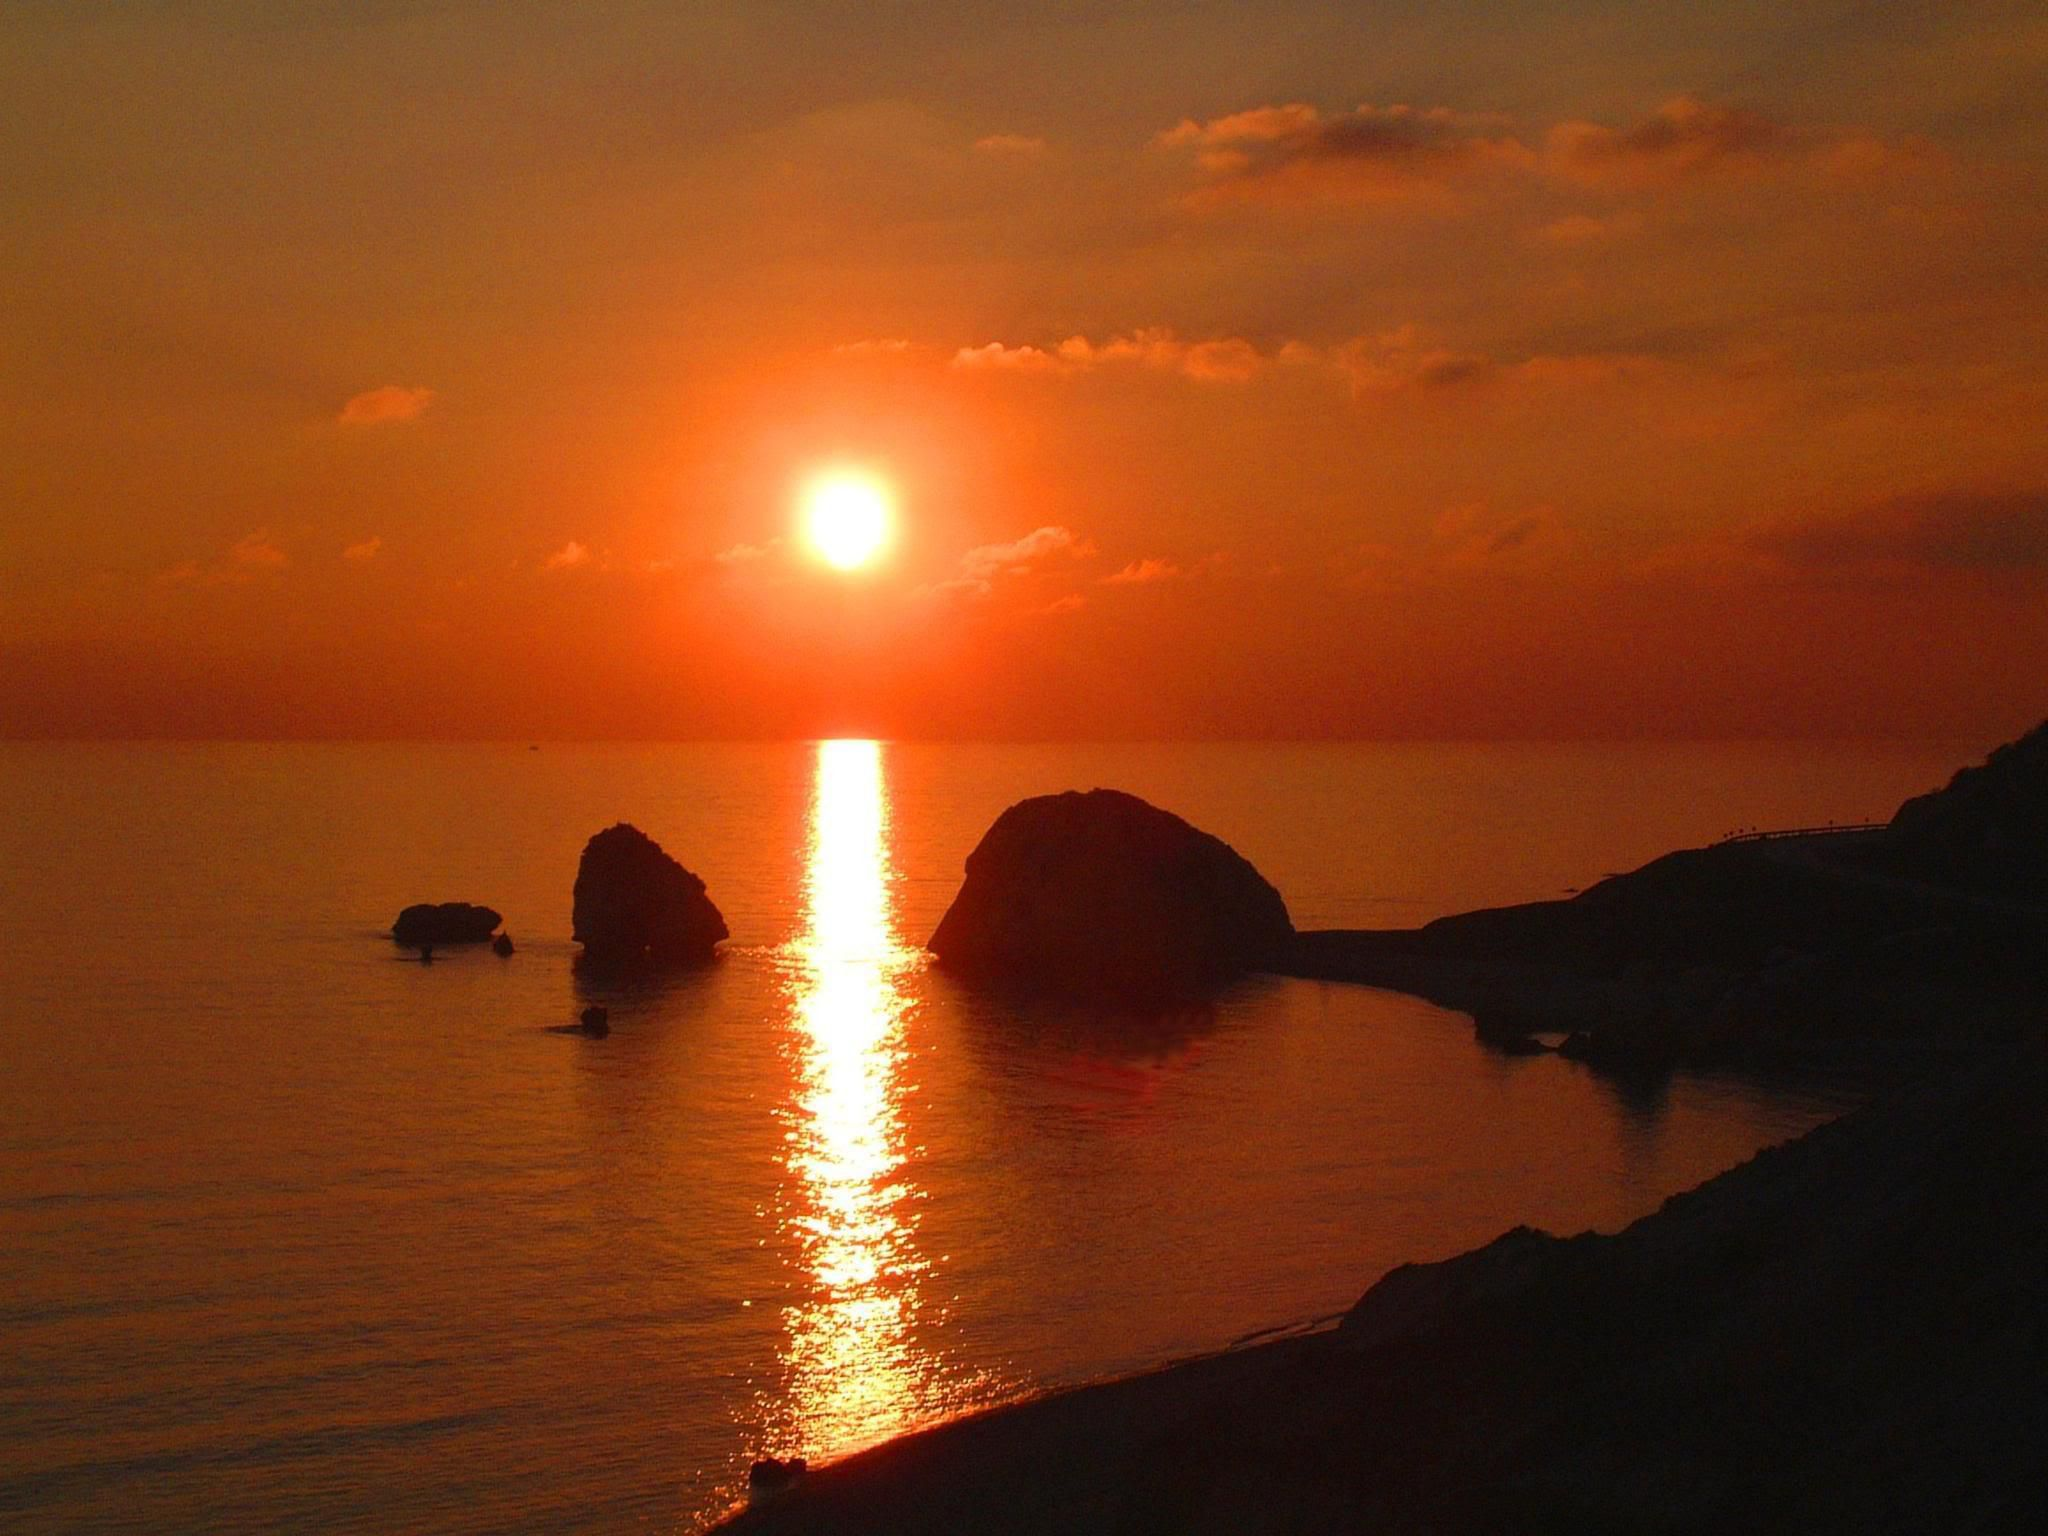 Sunset at Aphrodite's Rock